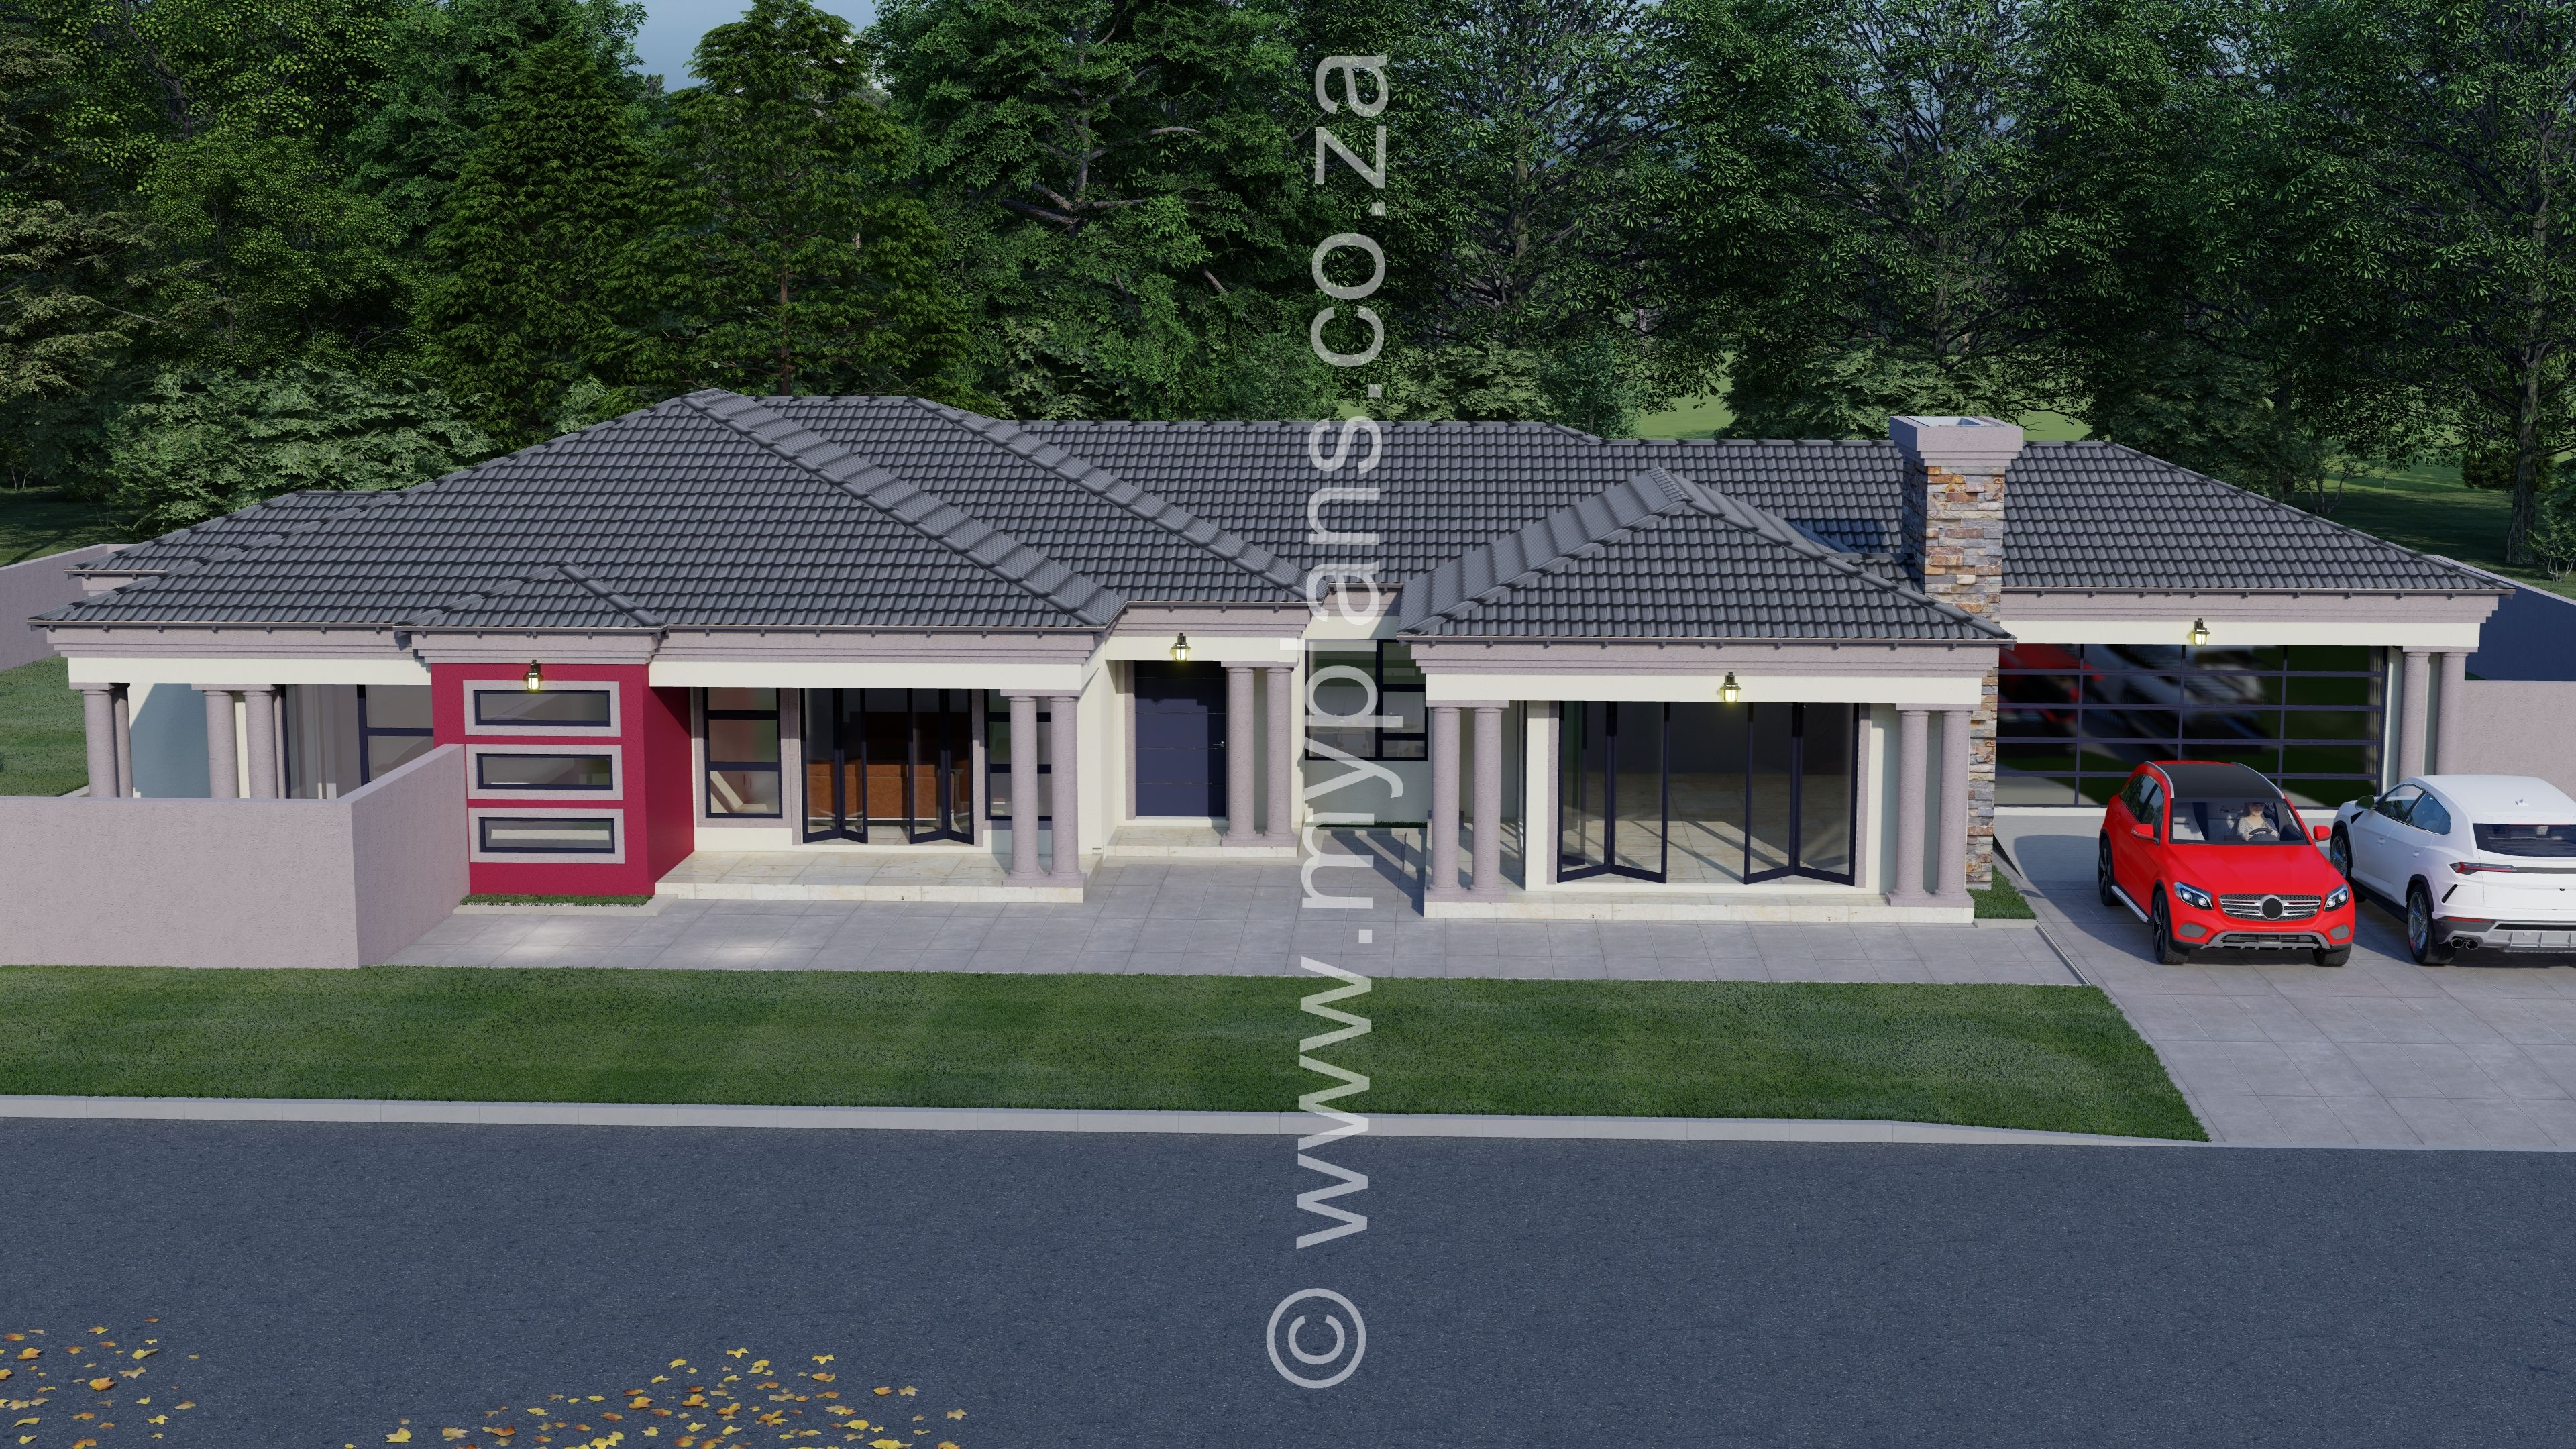 My Building Plans South Africa Tuscan House Plans 4 Bedroom House Plans Affordable House Plans